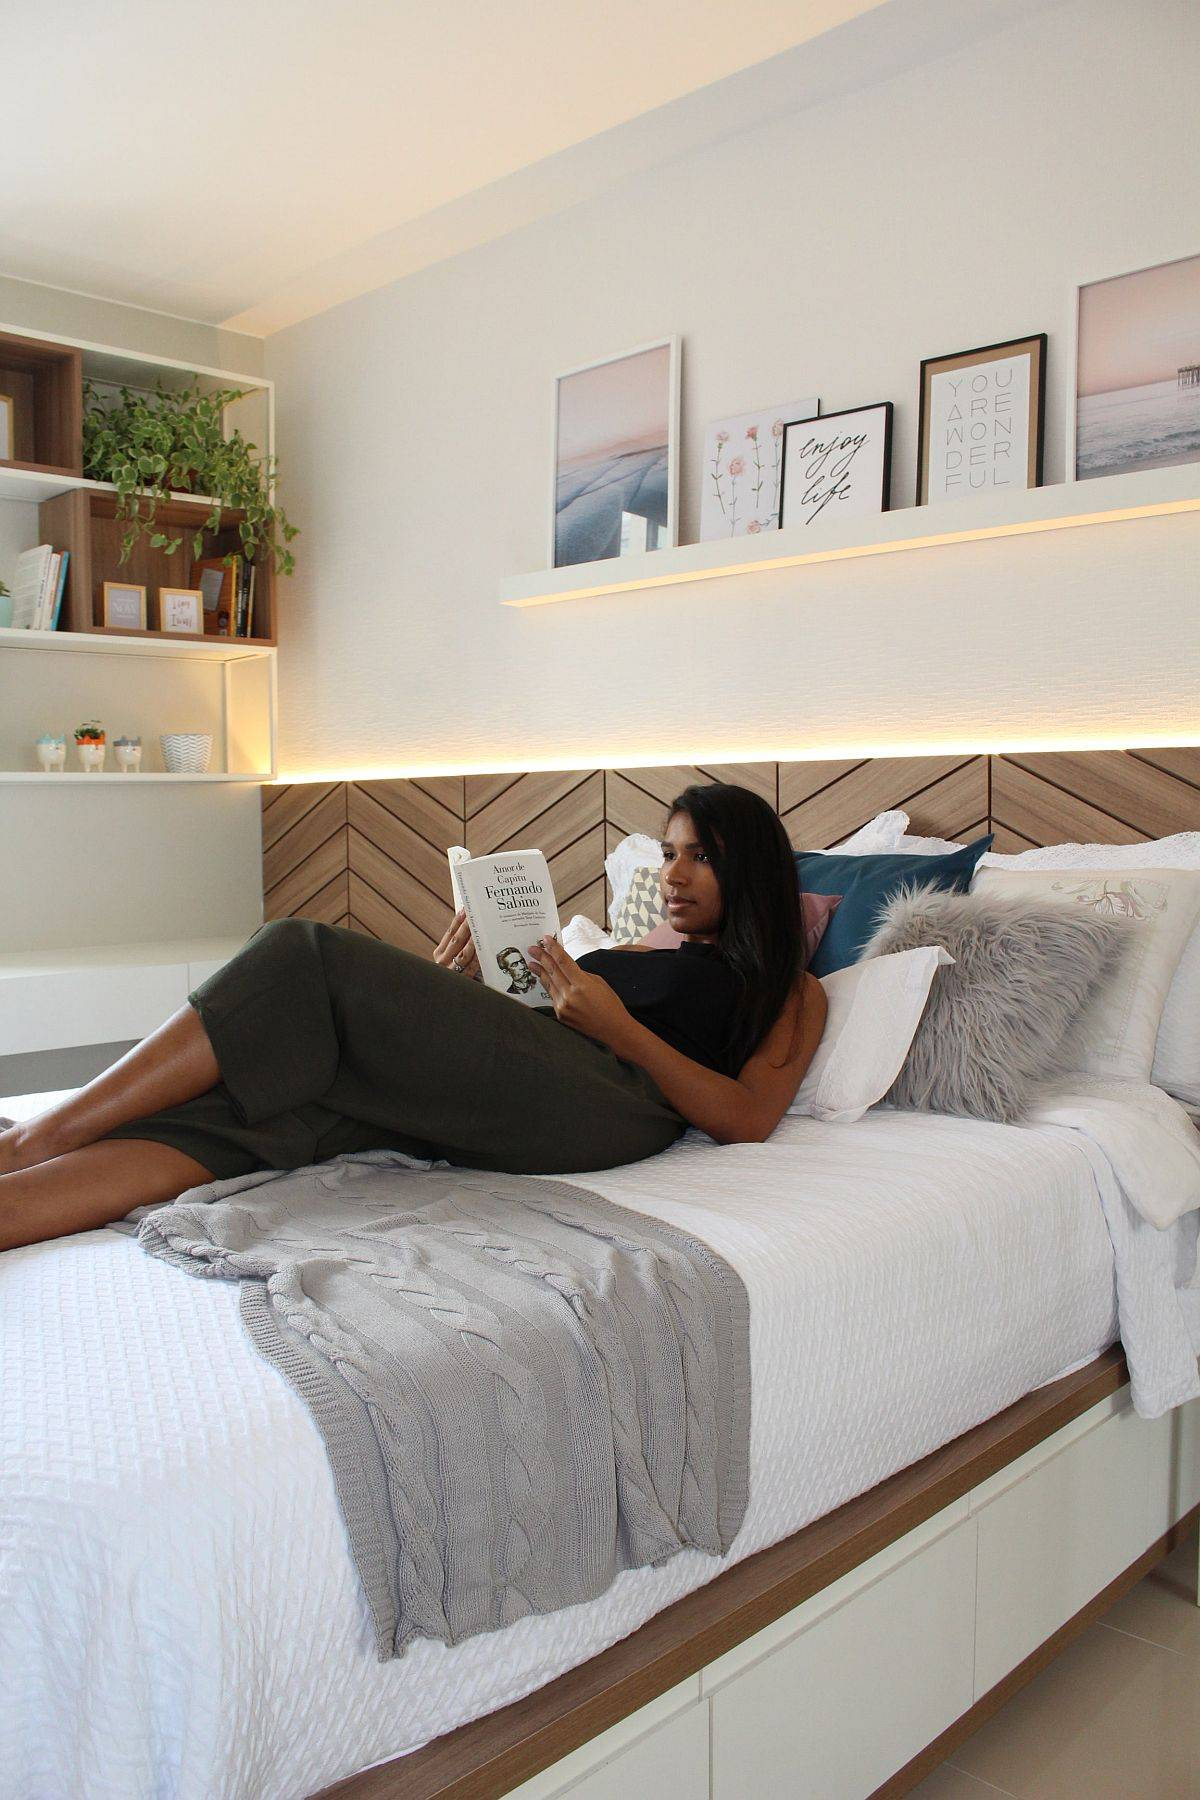 Polished-contemporary-bedroom-in-white-and-wood-with-smart-lighting-and-sleek-design-85312